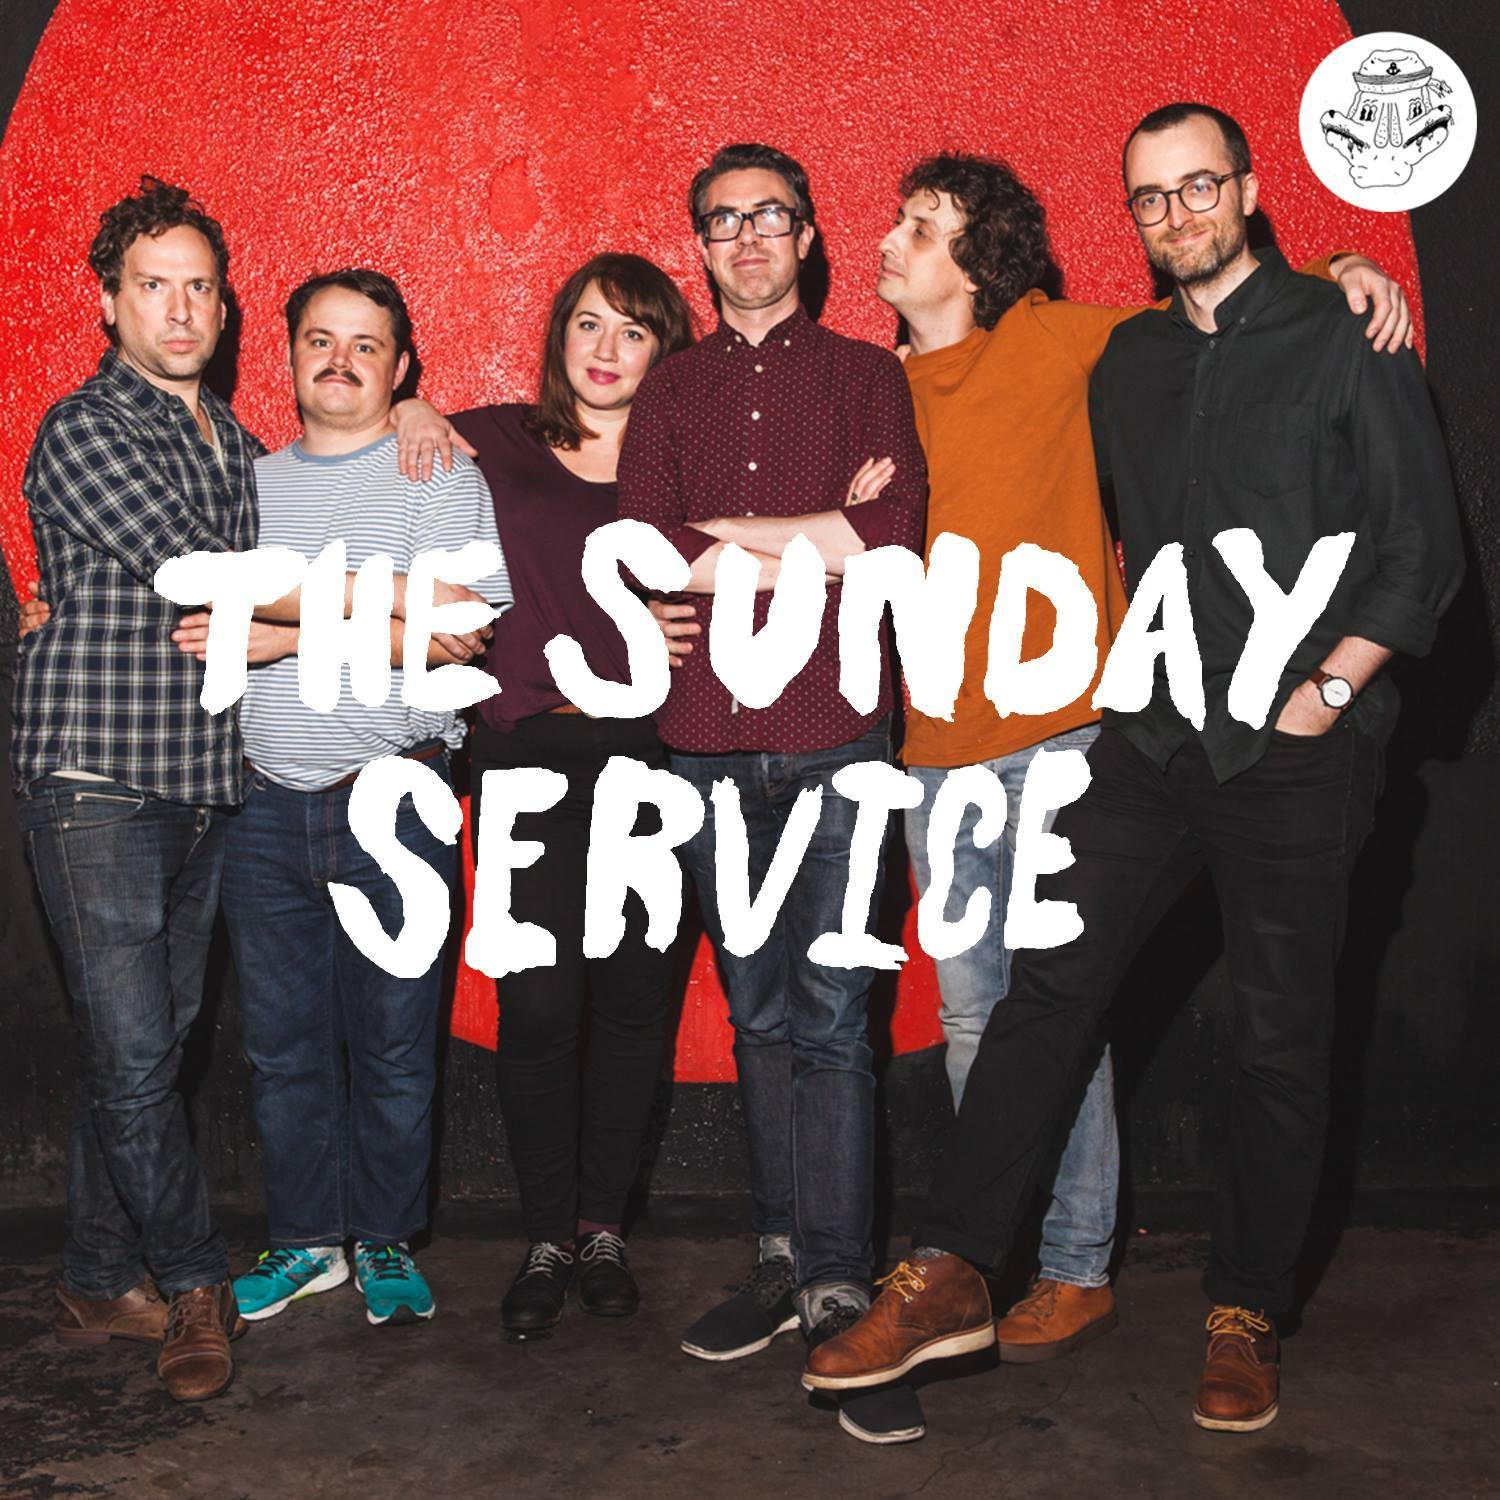 Sunday Nights - The Sunday ServiceWith over 20 Canadian Comedy Award Nominations, a CCA Best improve Troupe Award in 2012, and international recognition, The Sunday Service carries their audience through a kaleidoscopic trip; watching scenes barrel into tangents and stories smash together to create a piece that holds the collective spirit to its highest regard, and puts a big ol' goofy shoe down to show everyone they're not so serious7:30pm —10:30pm in the Cabaret   $10